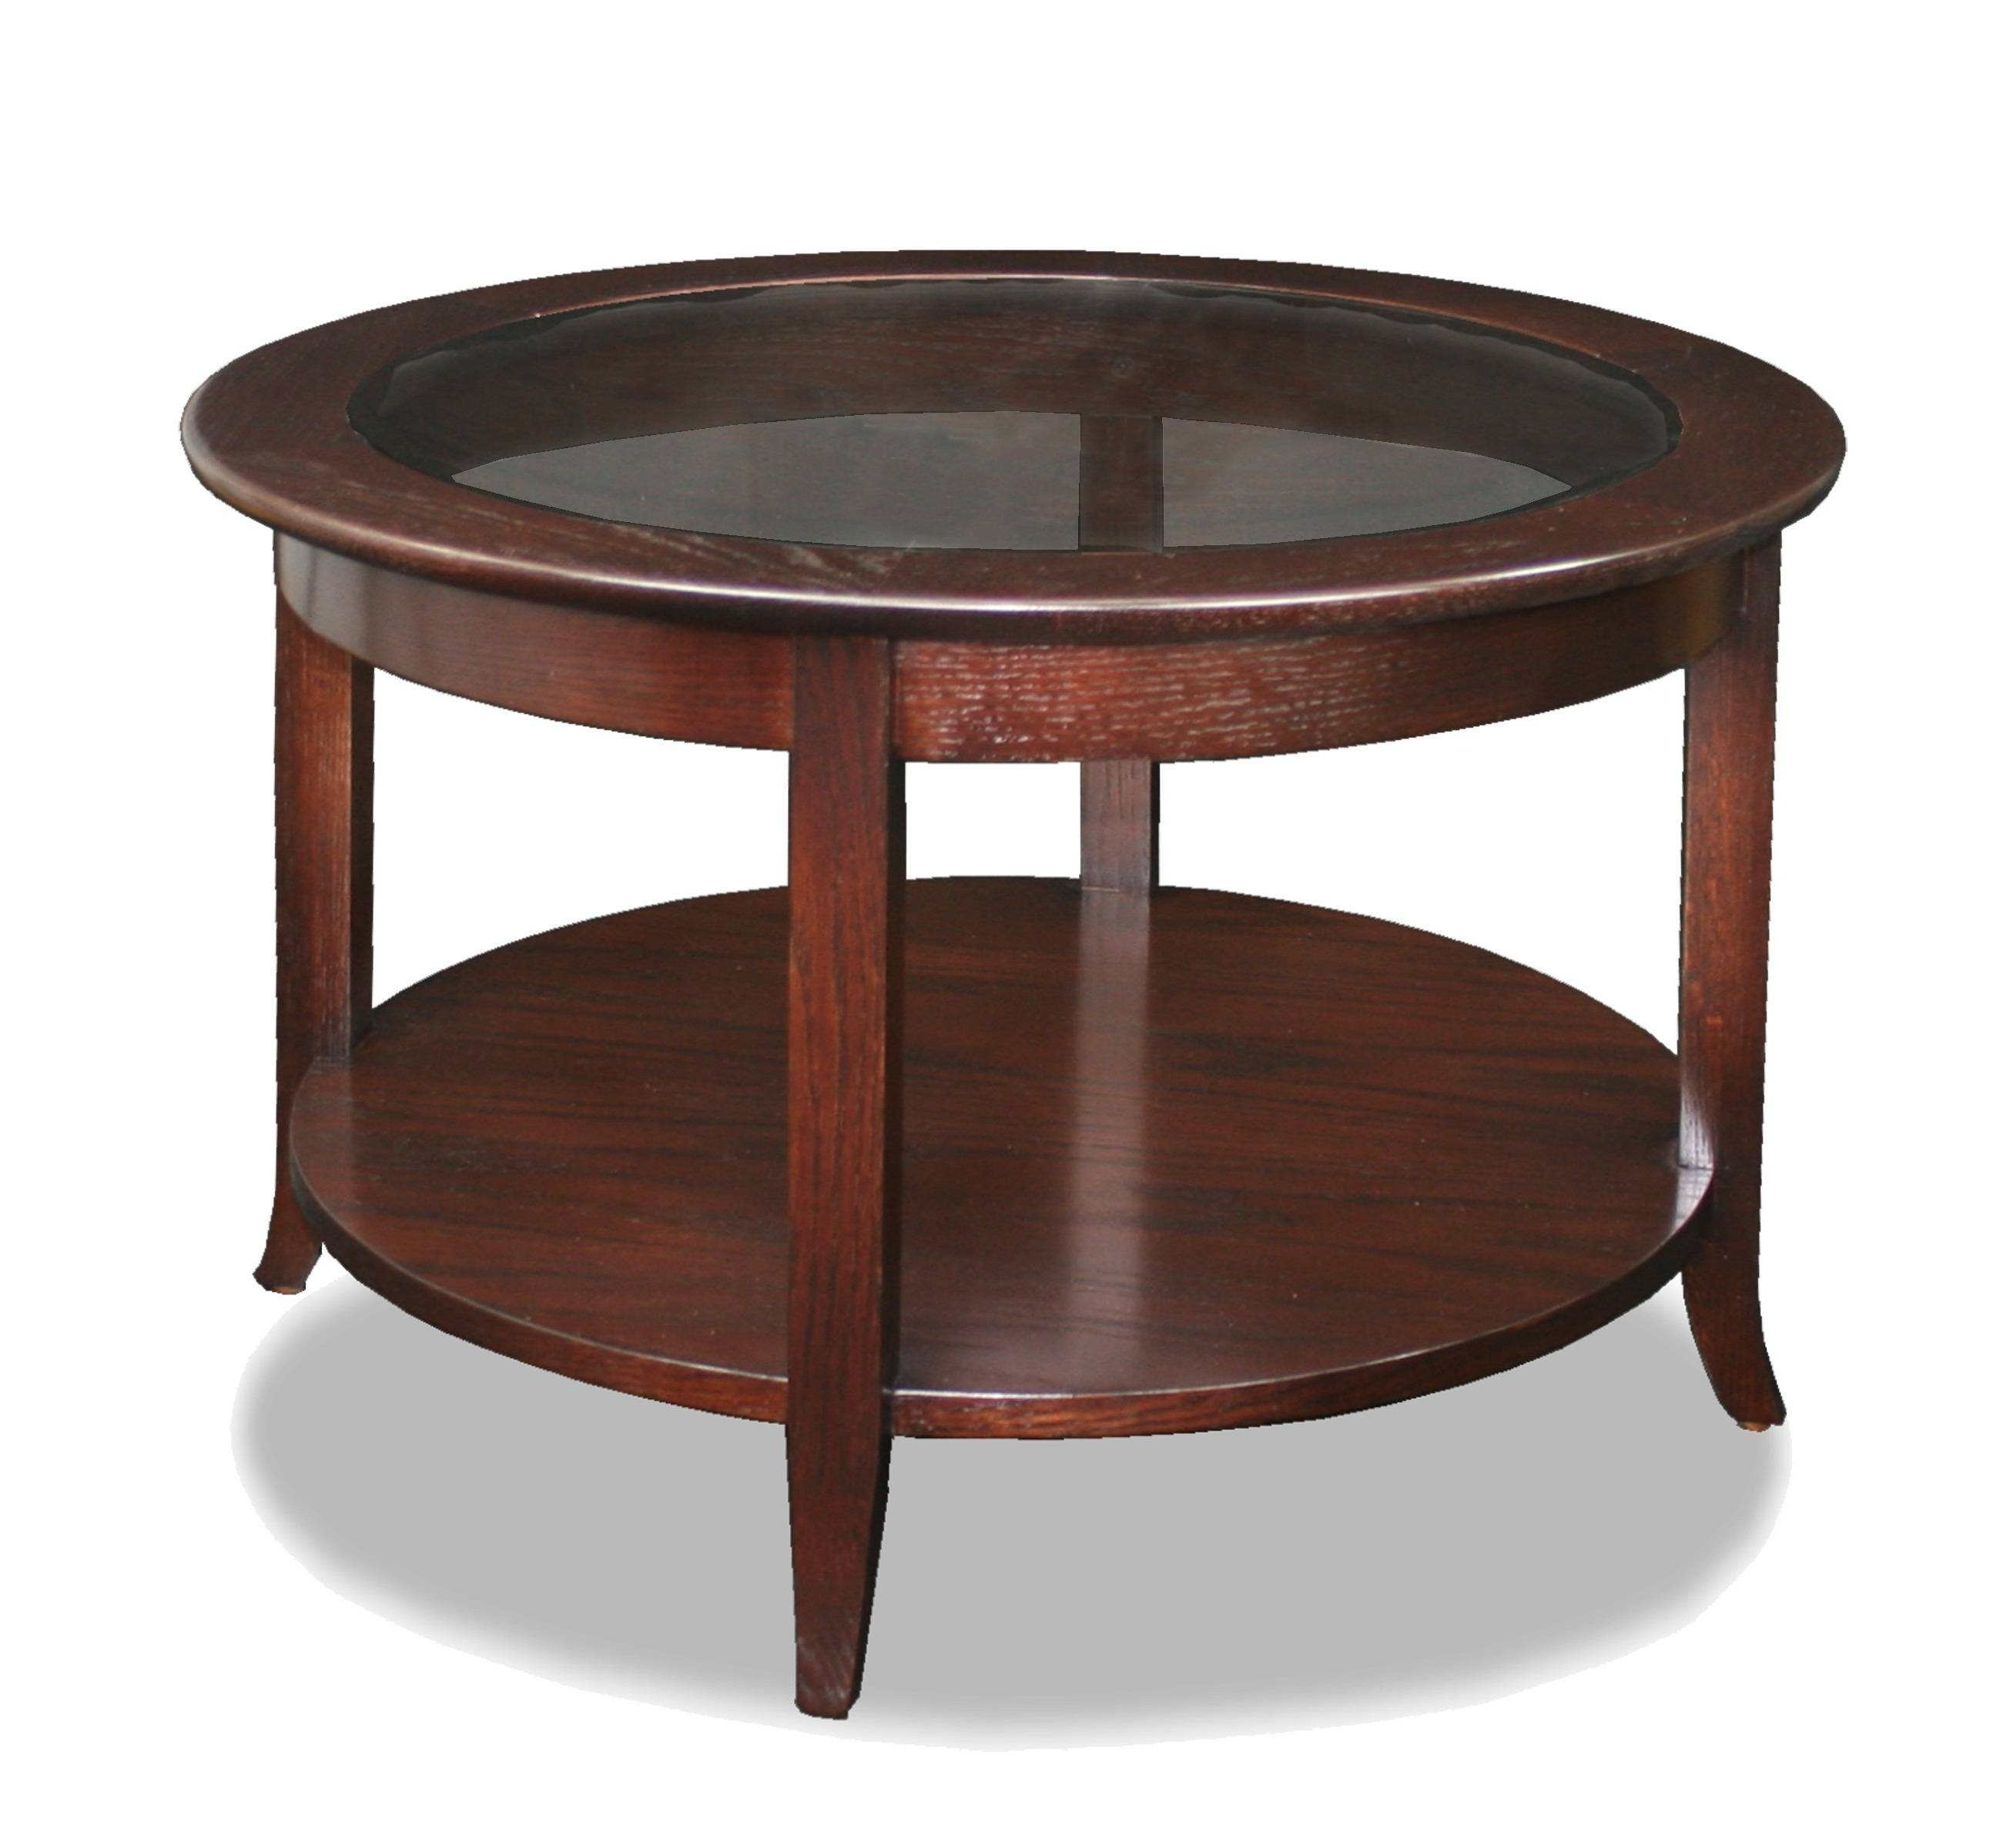 Coffee Table: Breathtaking Circle Coffee Table Ideas Round Black pertaining to Circular Coffee Tables With Storage (Image 7 of 30)